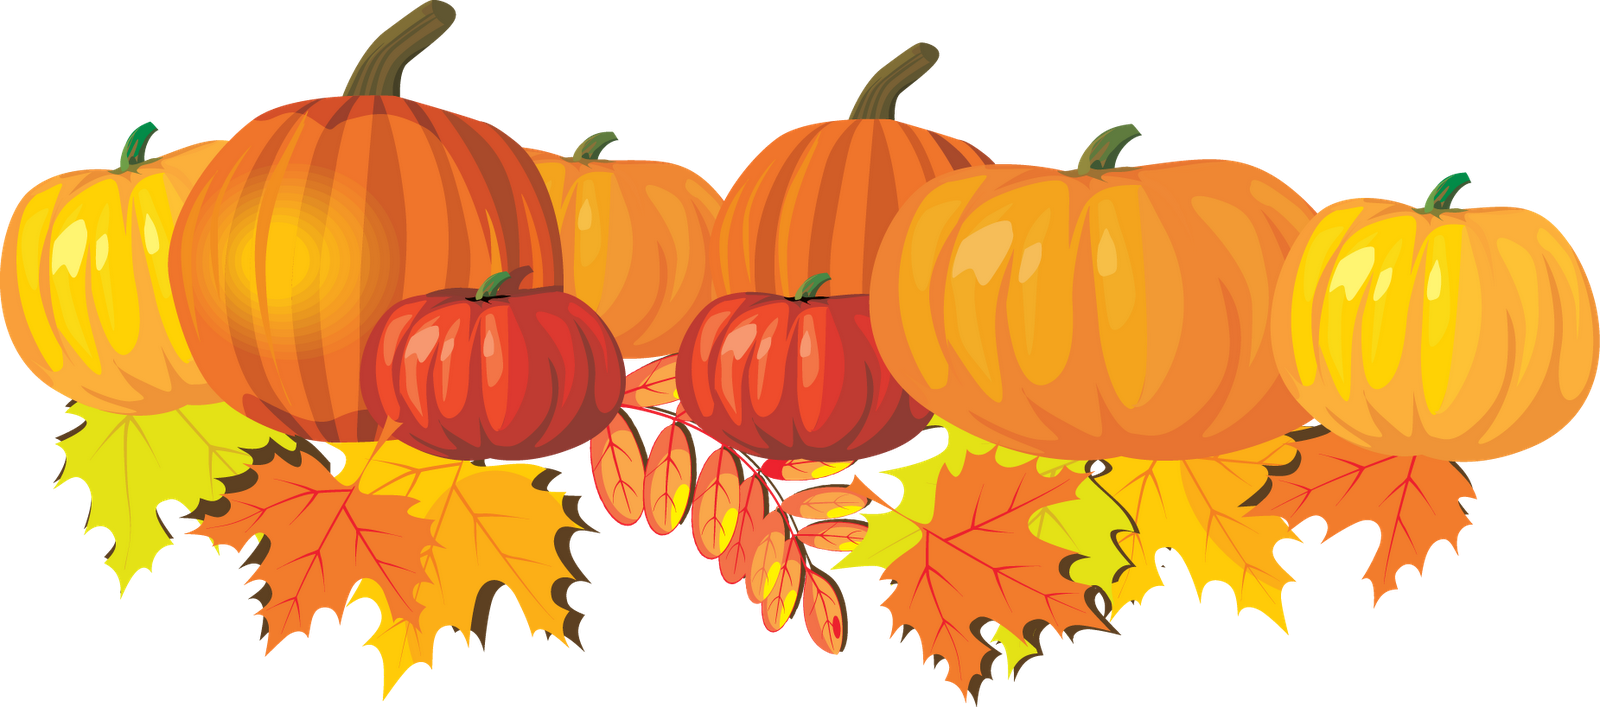 Pumpkins clipart image several pumpkins in a pumpkin patch.